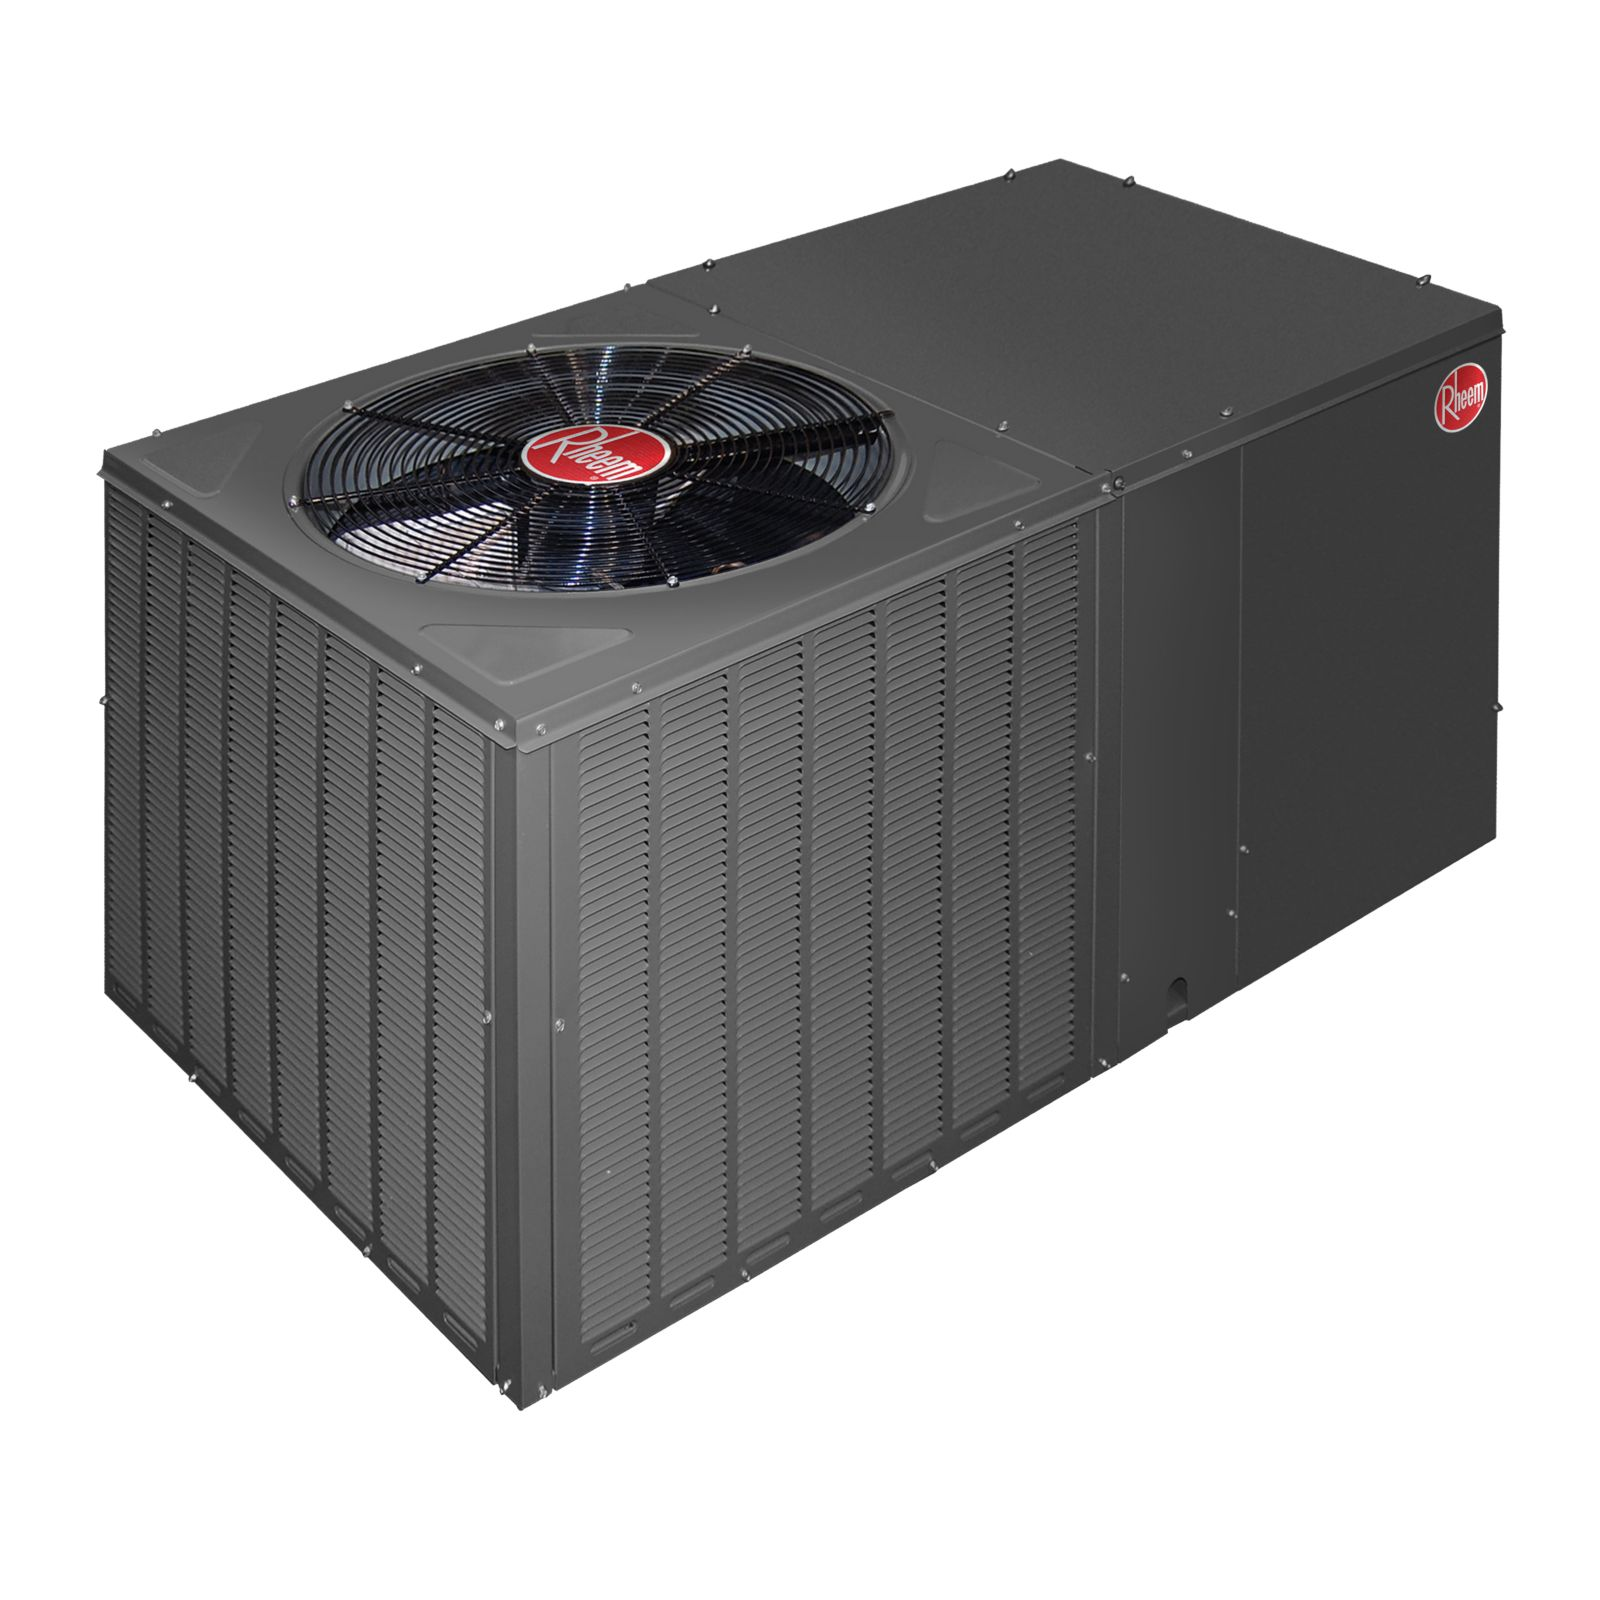 Rheem RQRM-A024JK000 - Classic 2 Ton, 15/16 SEER, R410A, Packaged Heat Pump With Horizontal Discharge, 208-230 V, 1 Ph, 60 Hz